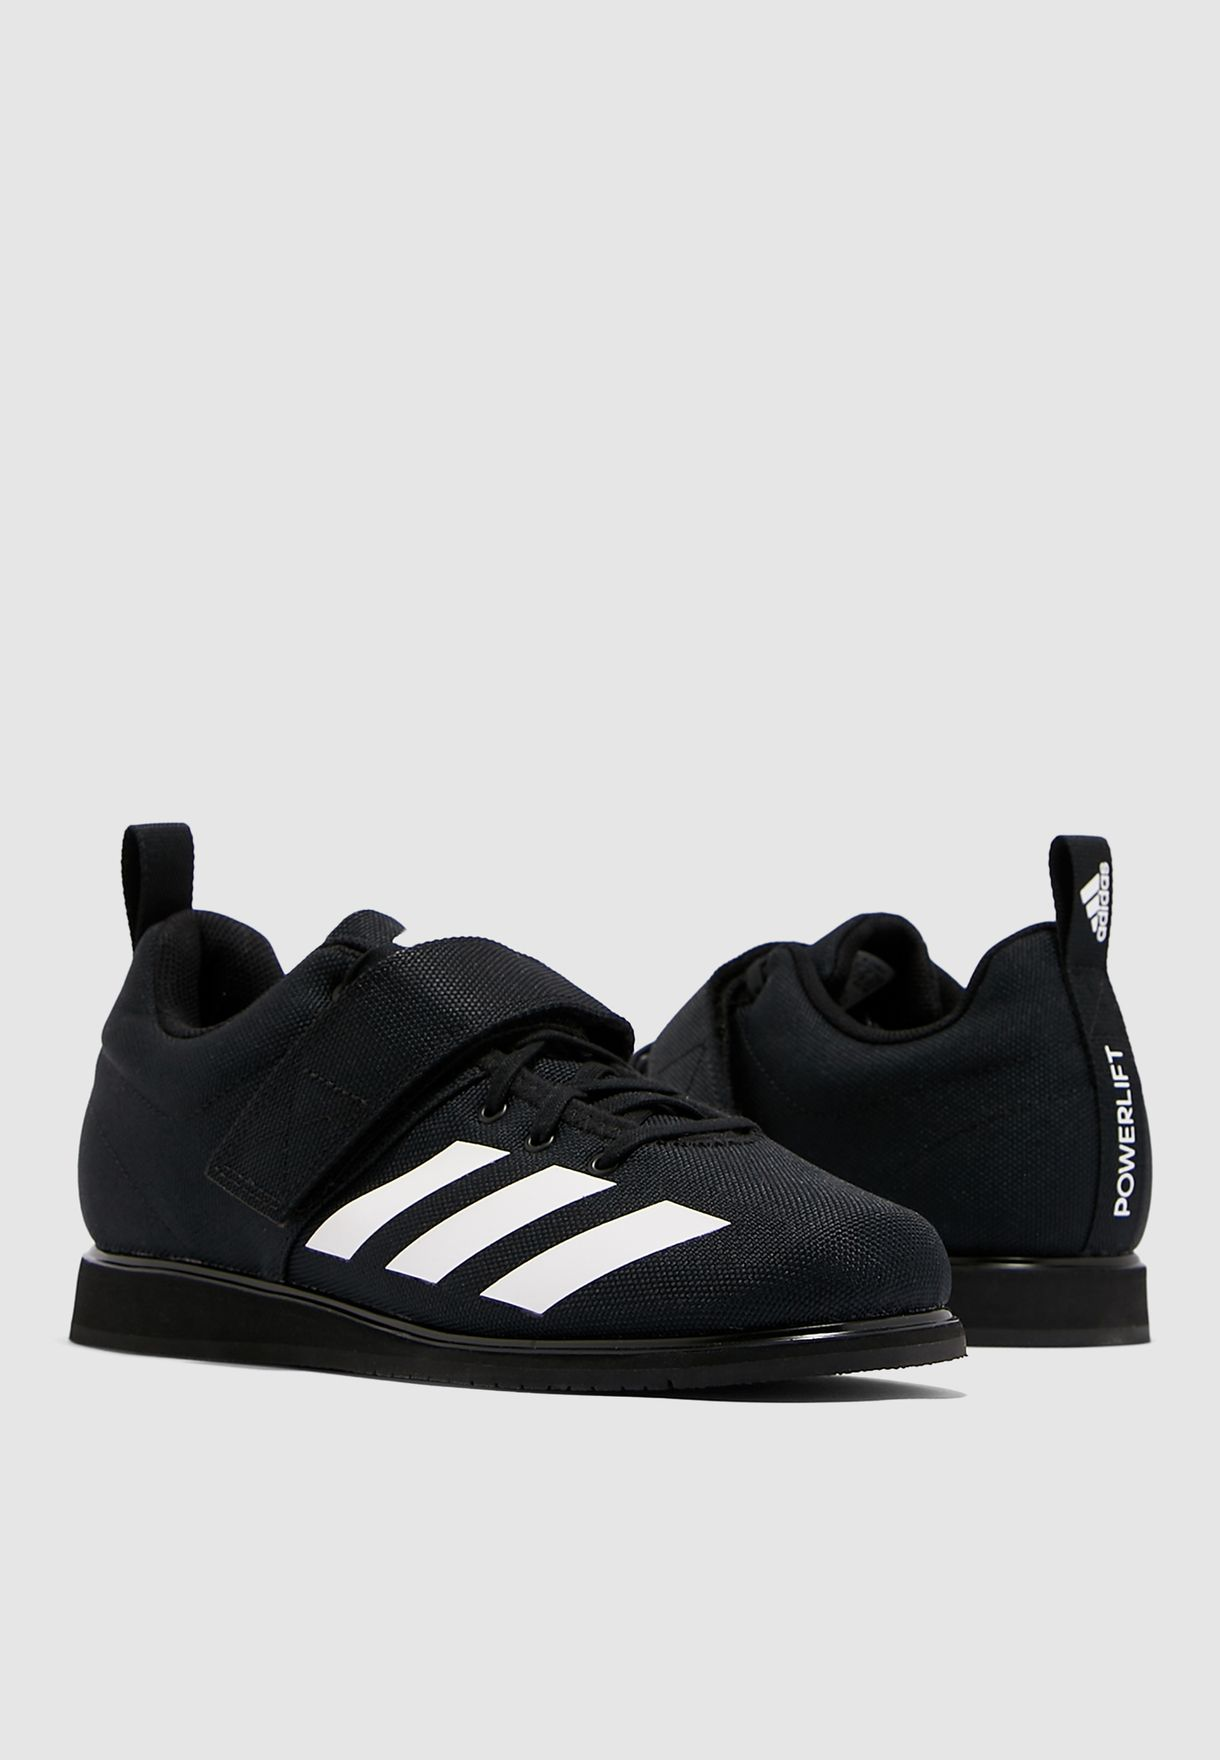 BRAND NEW All Sizes! Adidas Powerlift 4 Trainers for Men Black